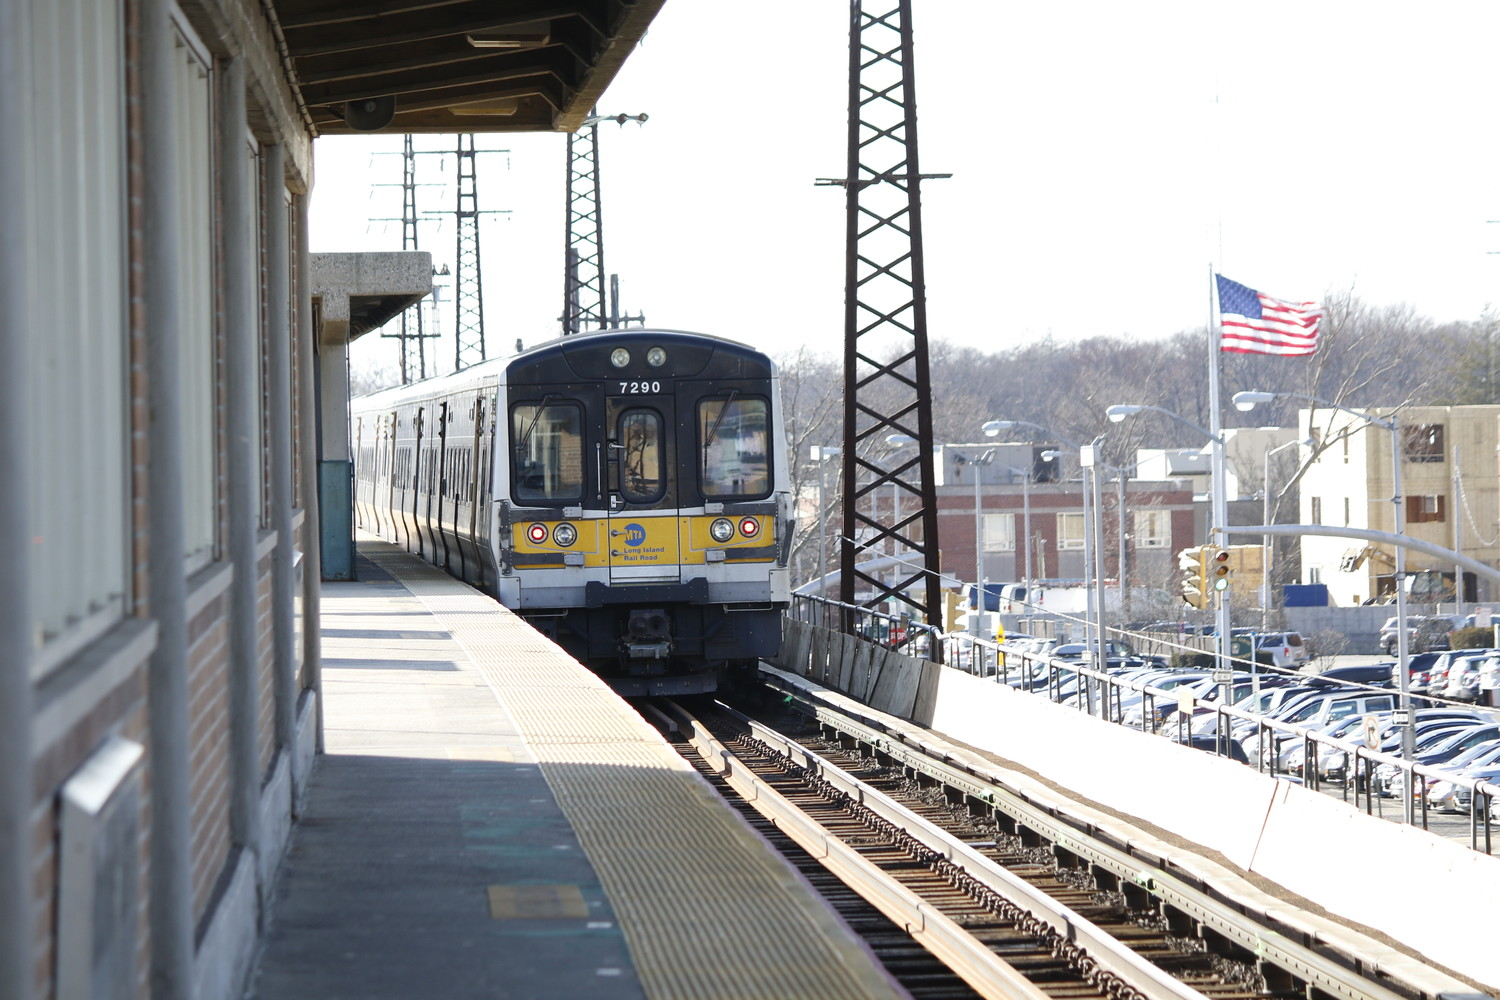 A man was struck and killed by a train in Rockville Centre on Friday.